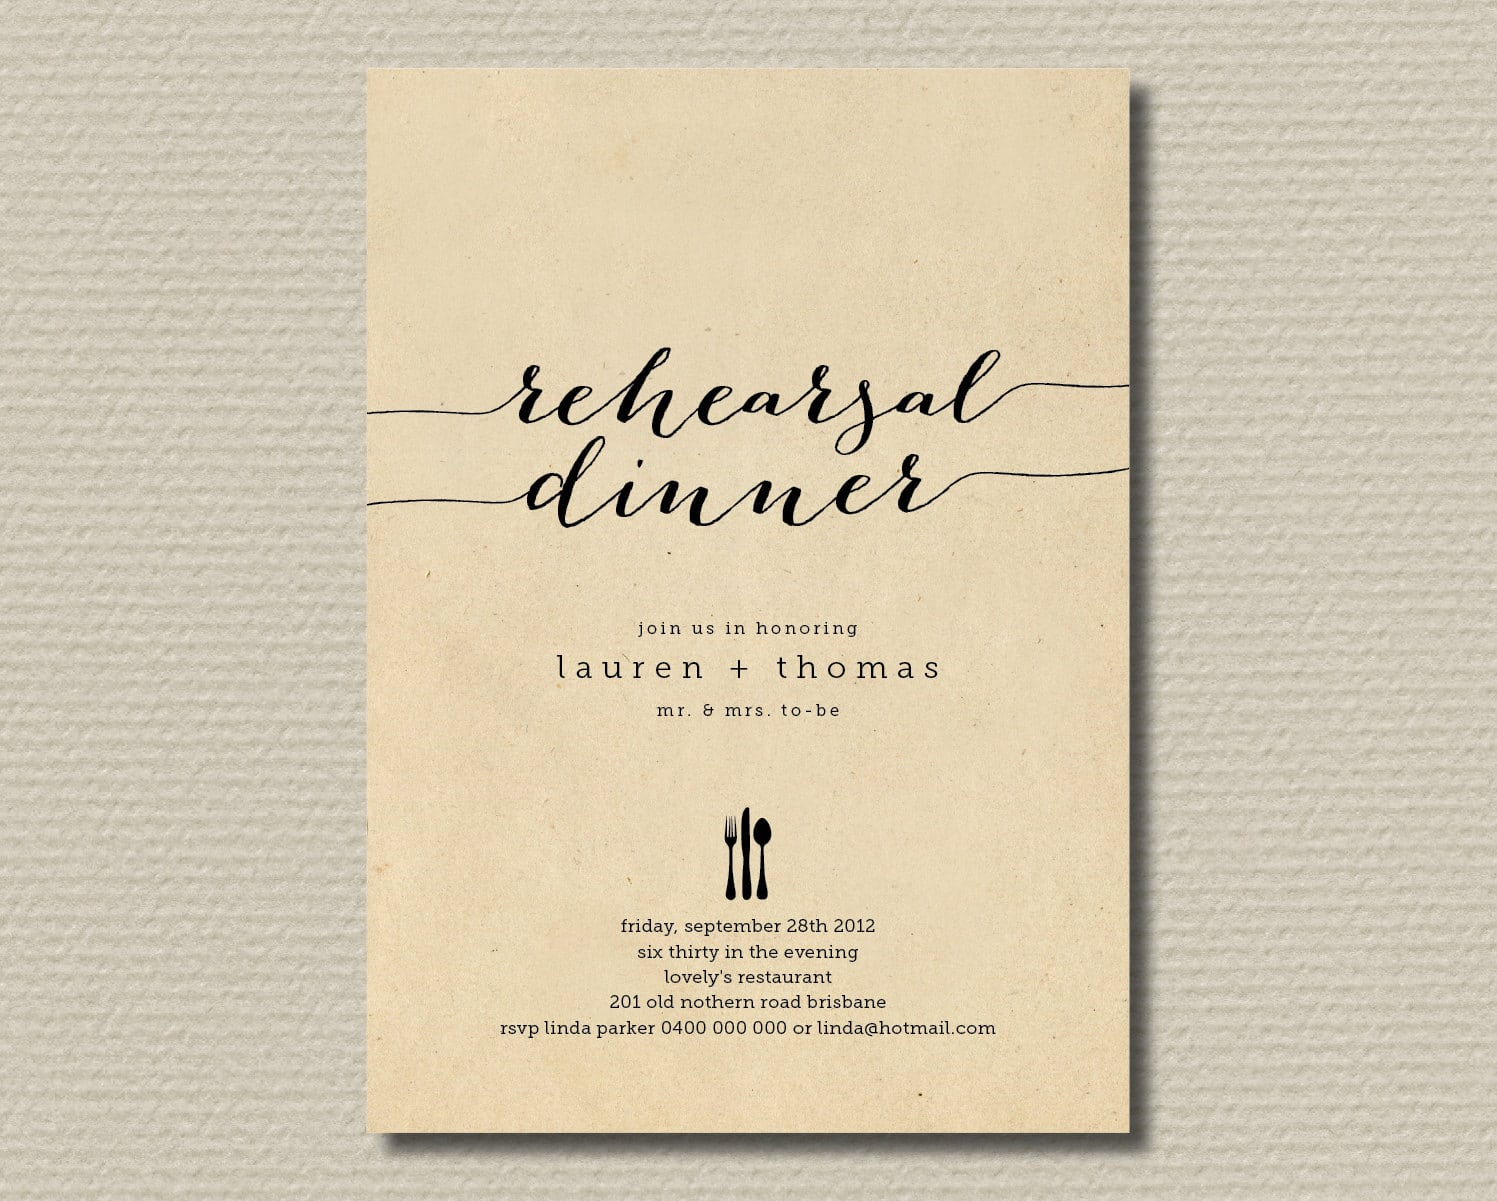 ... Free Dinner Invitation U2013 Dinner Invitation Sample Dinner Invitation  Email Template ...